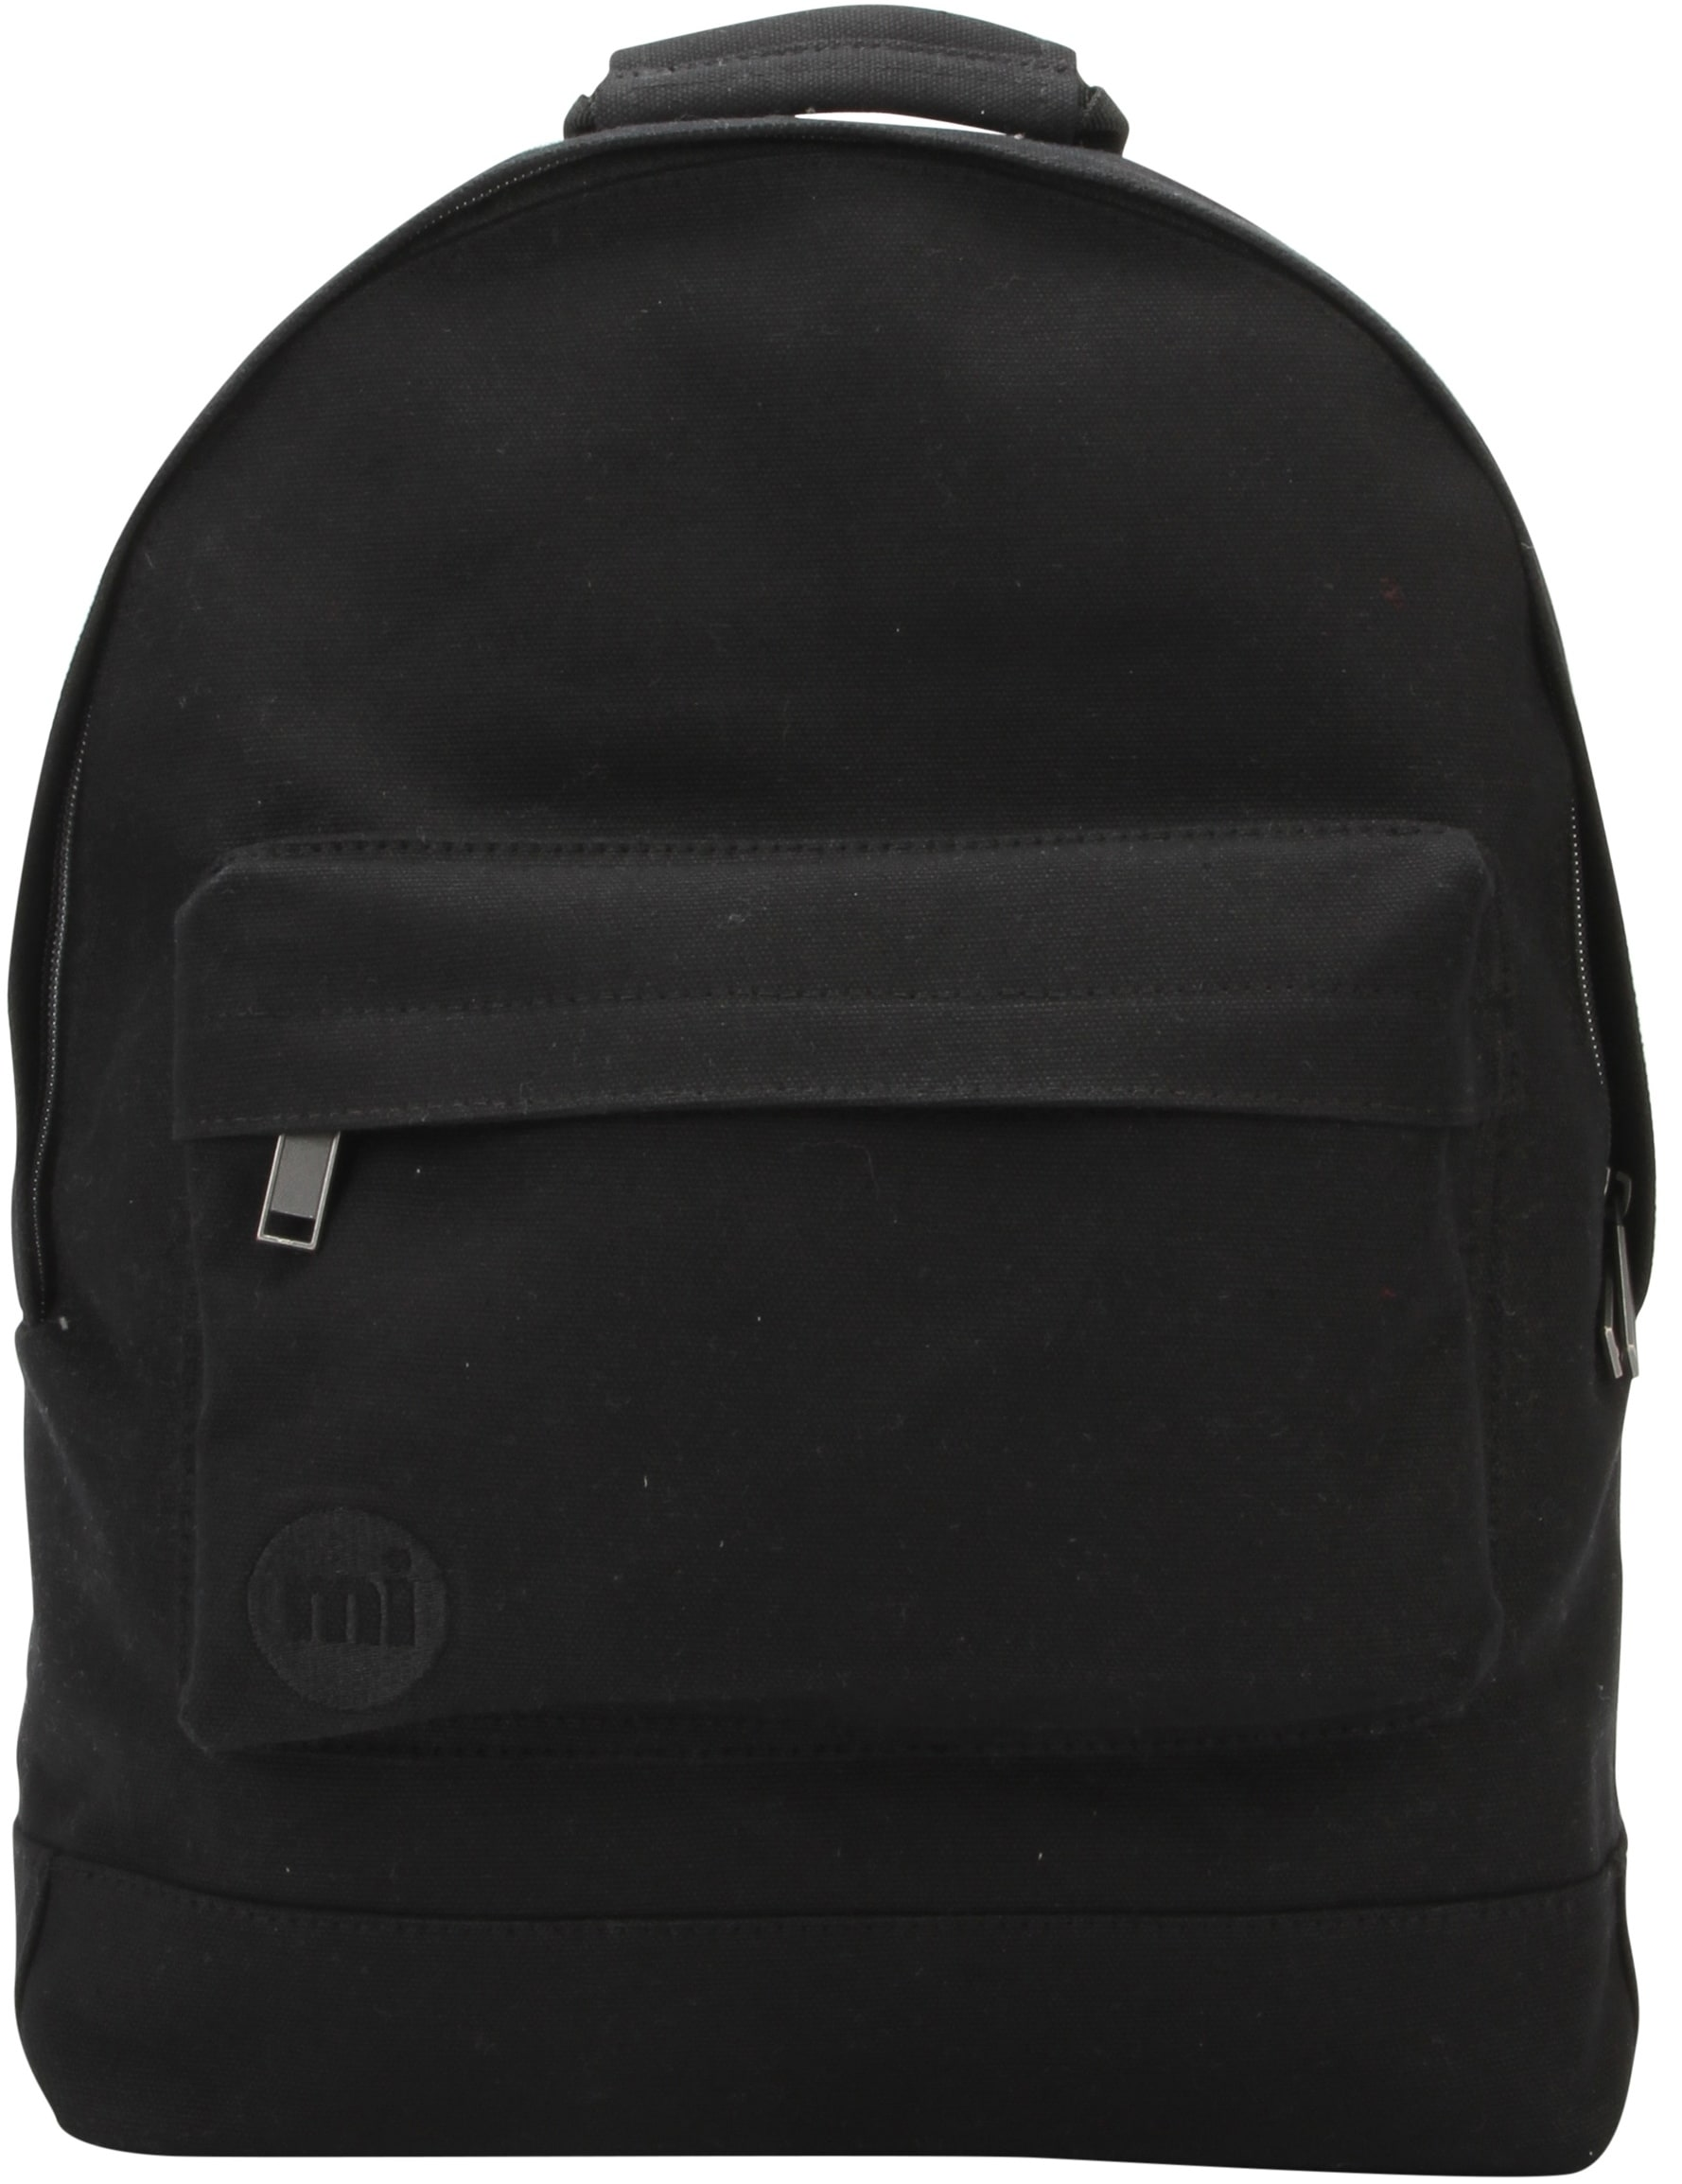 MiPac Canvas Backpack  Black